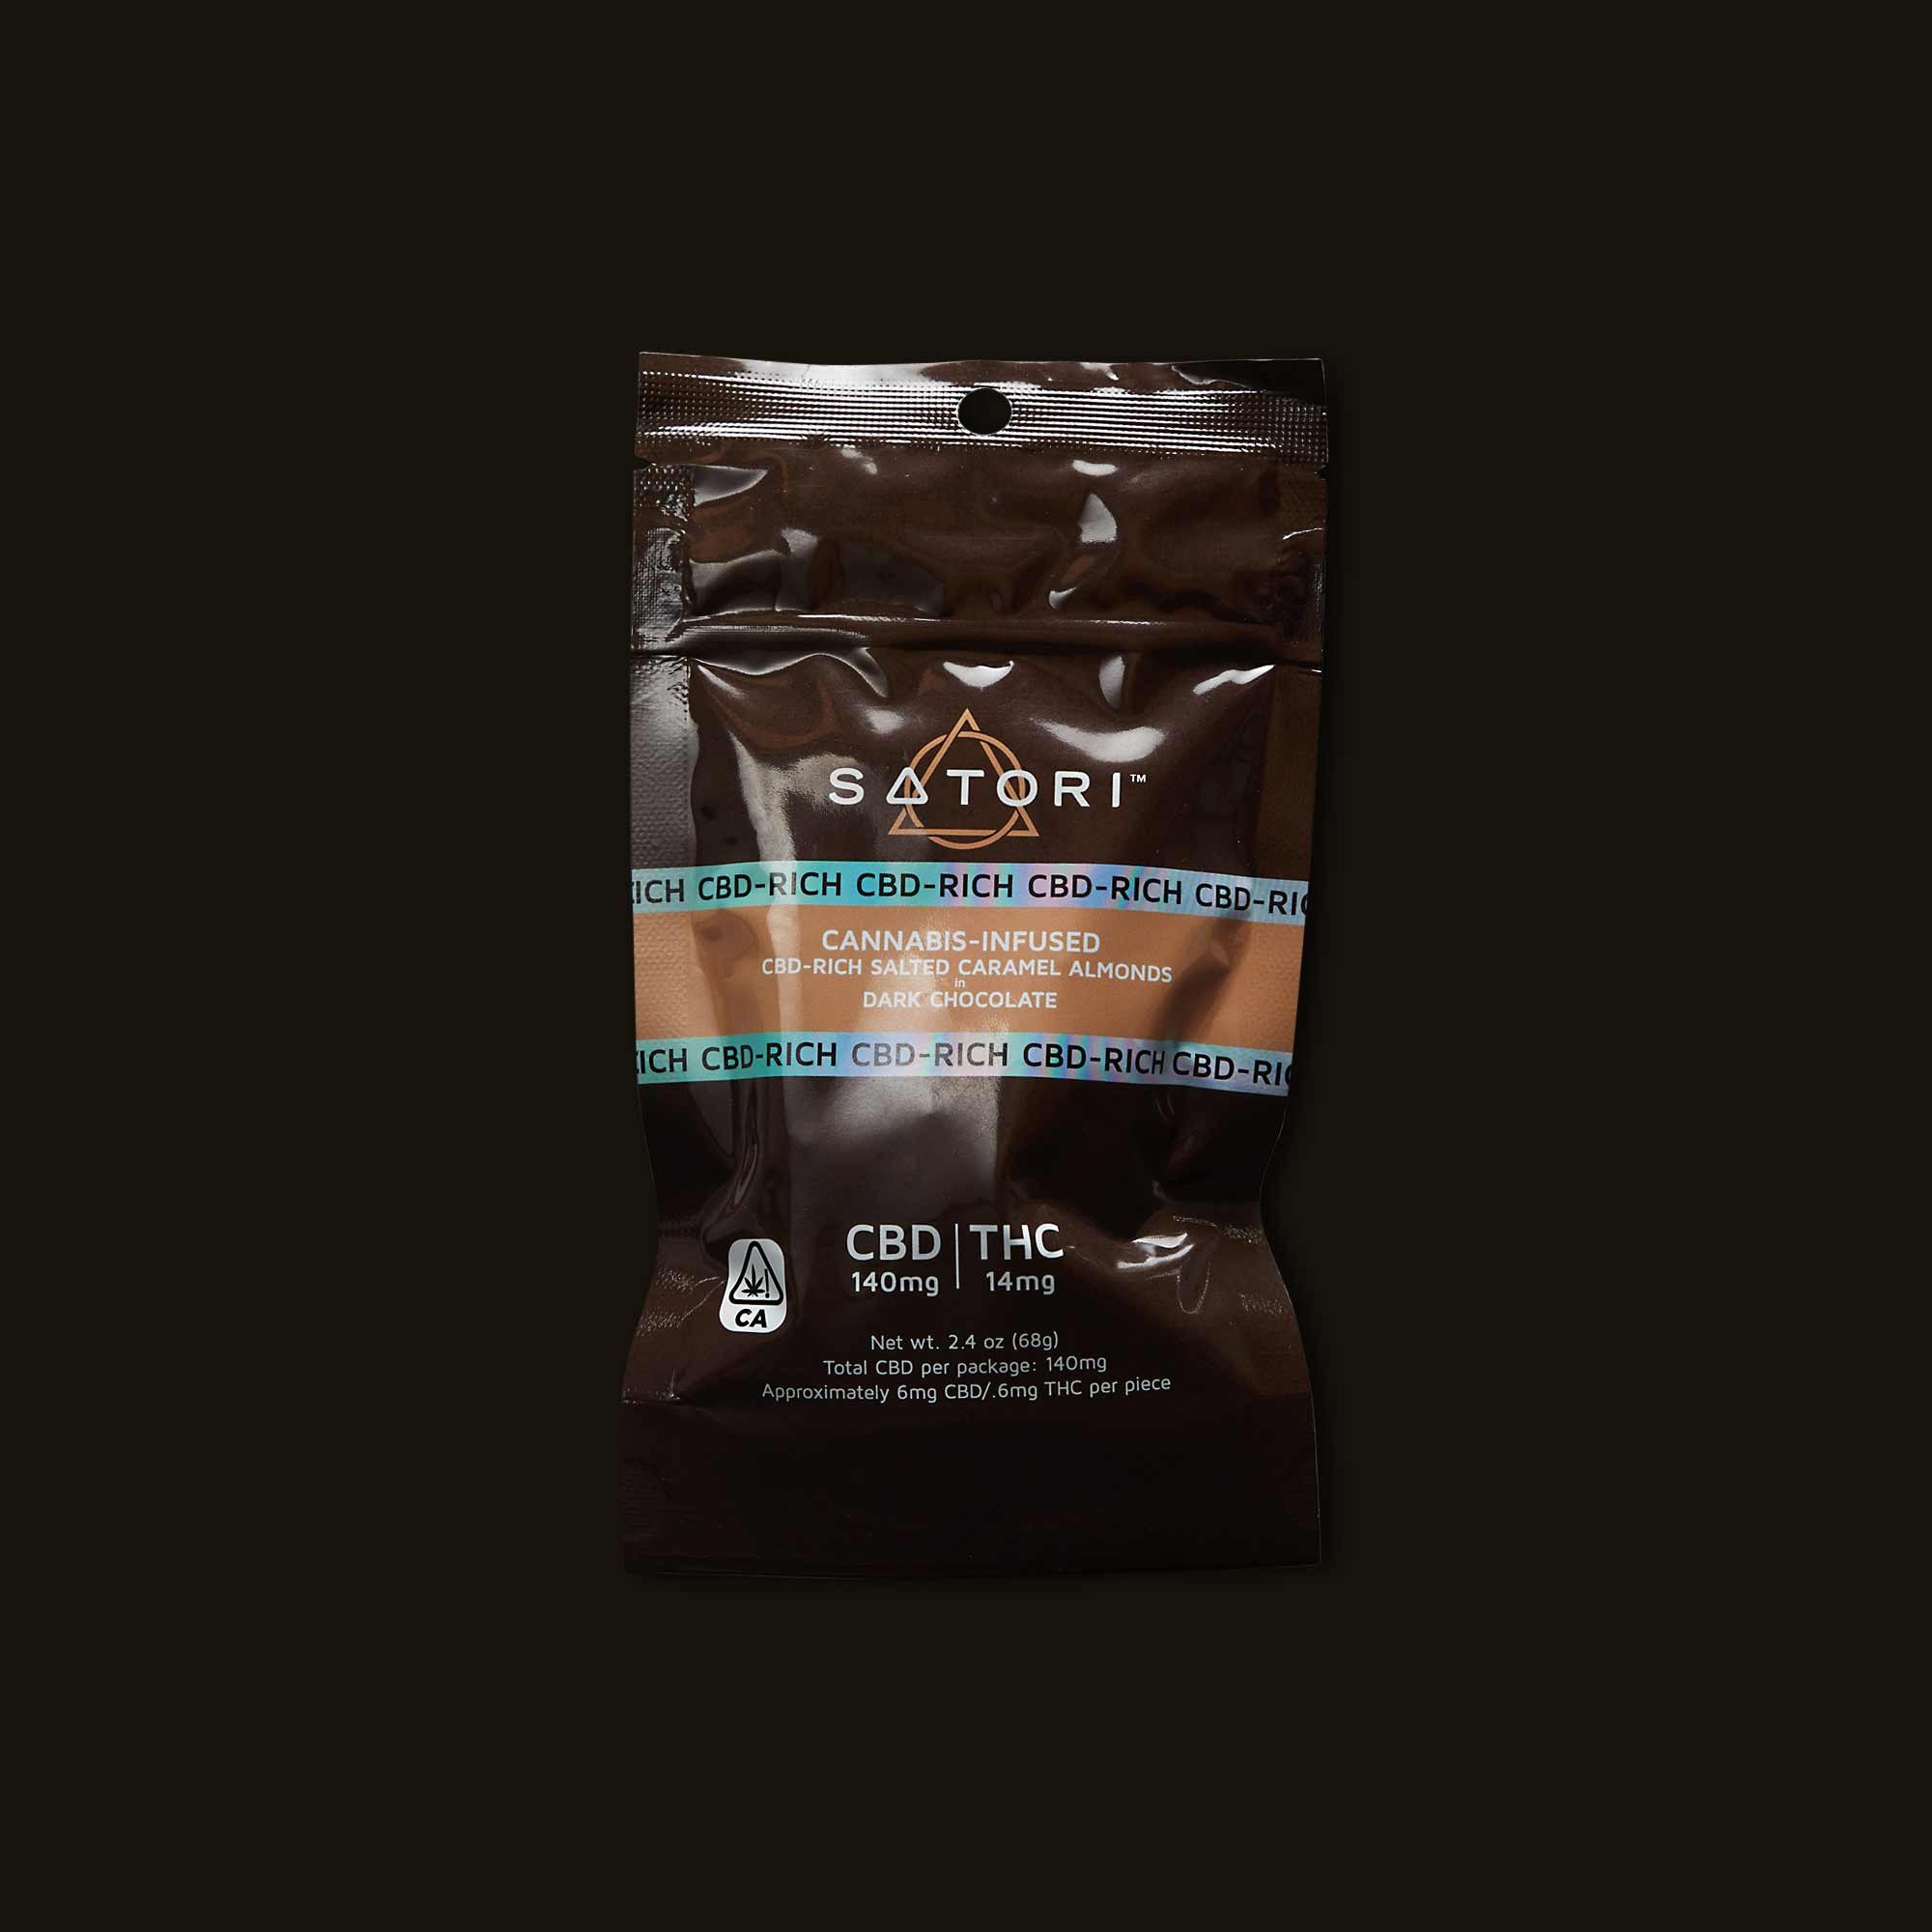 Satori Chocolates CBD-Rich Salted Caramel Almonds in Dark Chocolate